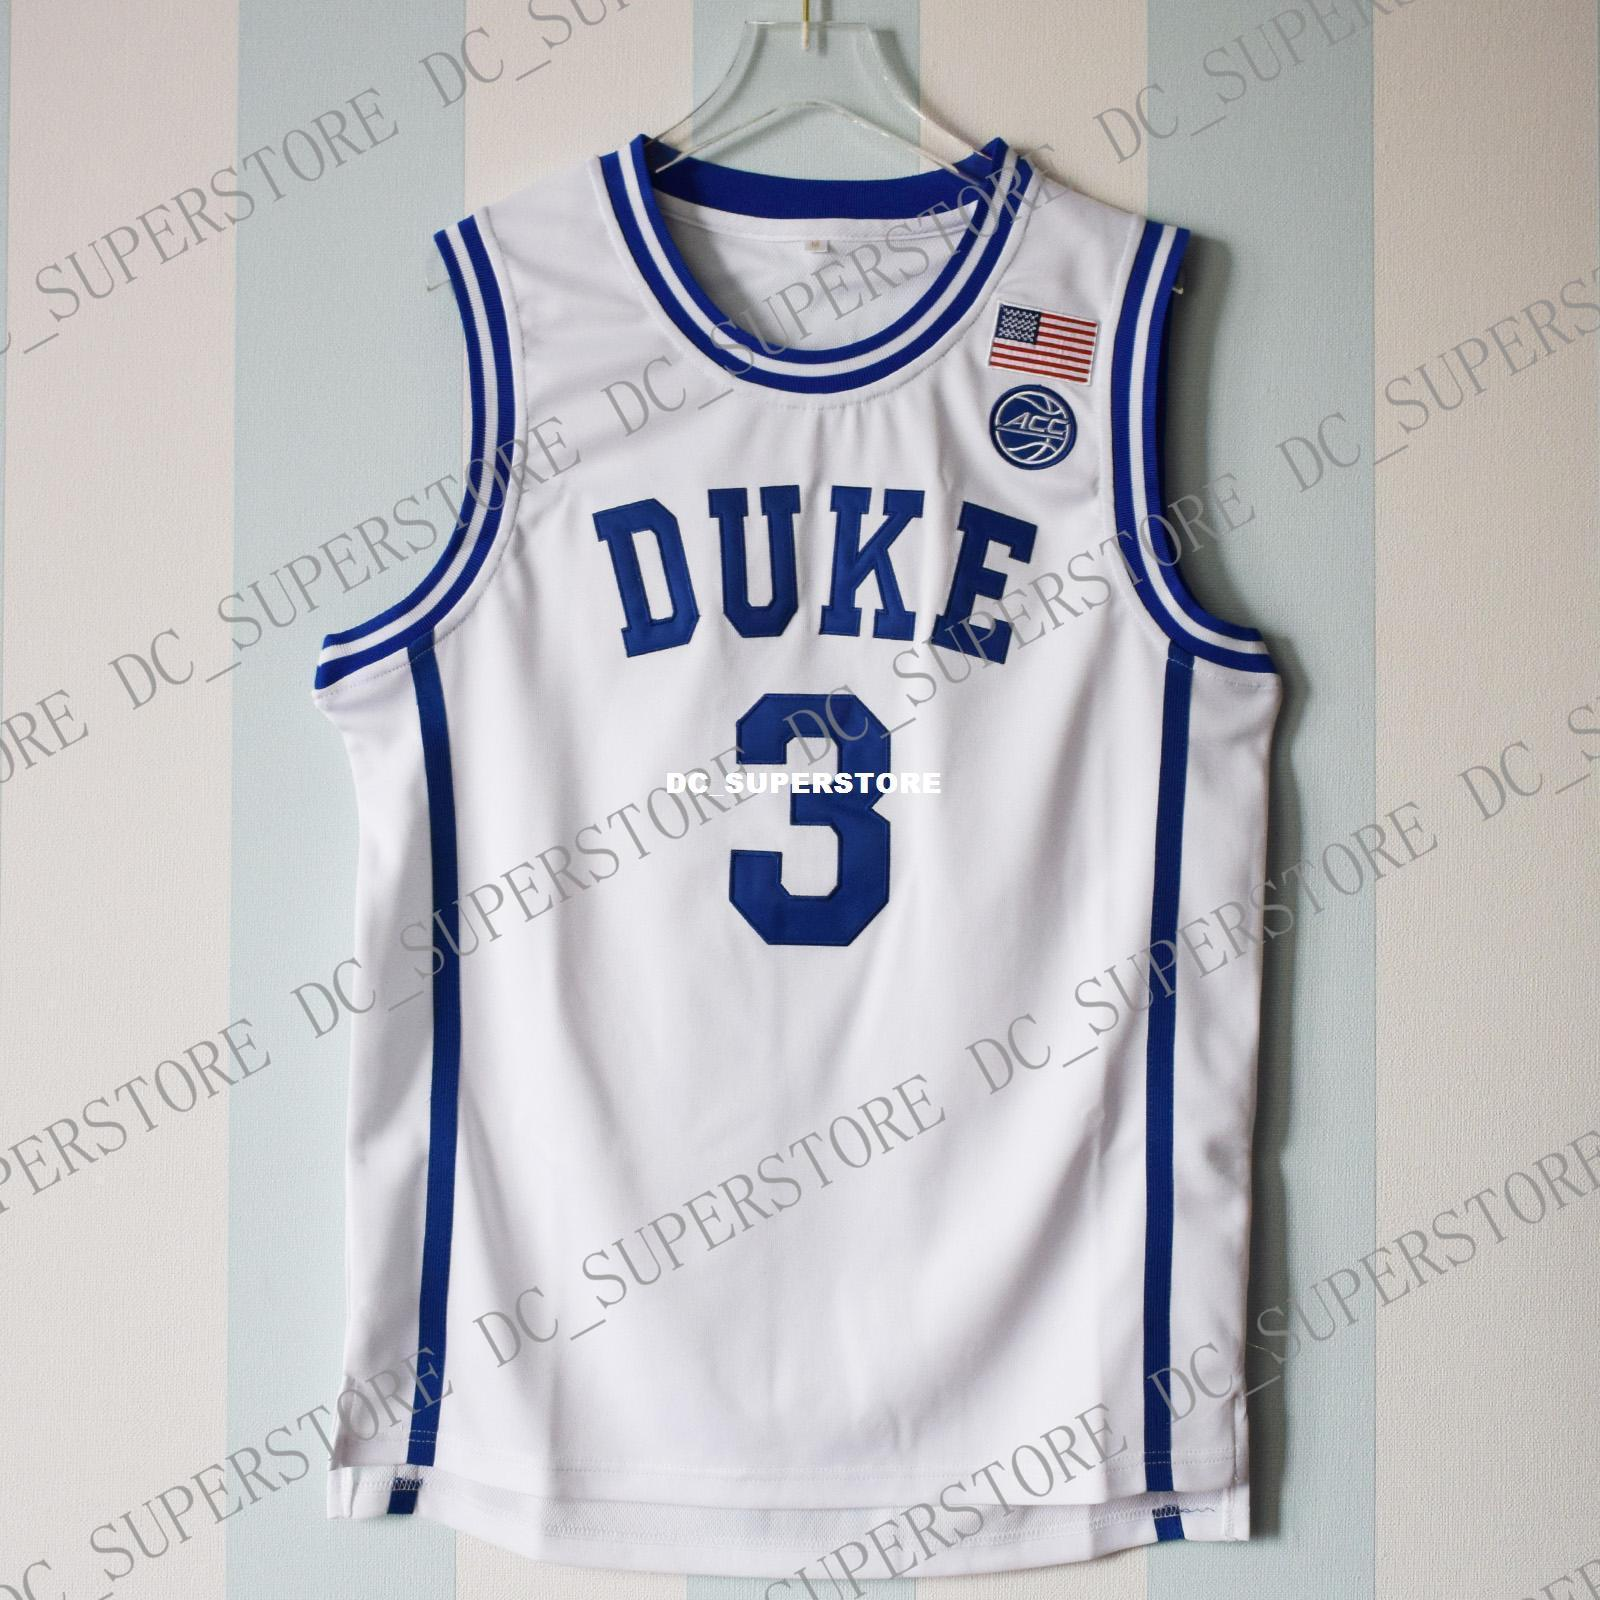 2019 Cheap Custom Grayson Allen  3 Duke Blue Devils Basketball White Jersey  Stitched Customize Any Number Name MEN WOMEN YOUTH XS 5XL From  Dc superstore abd7332015